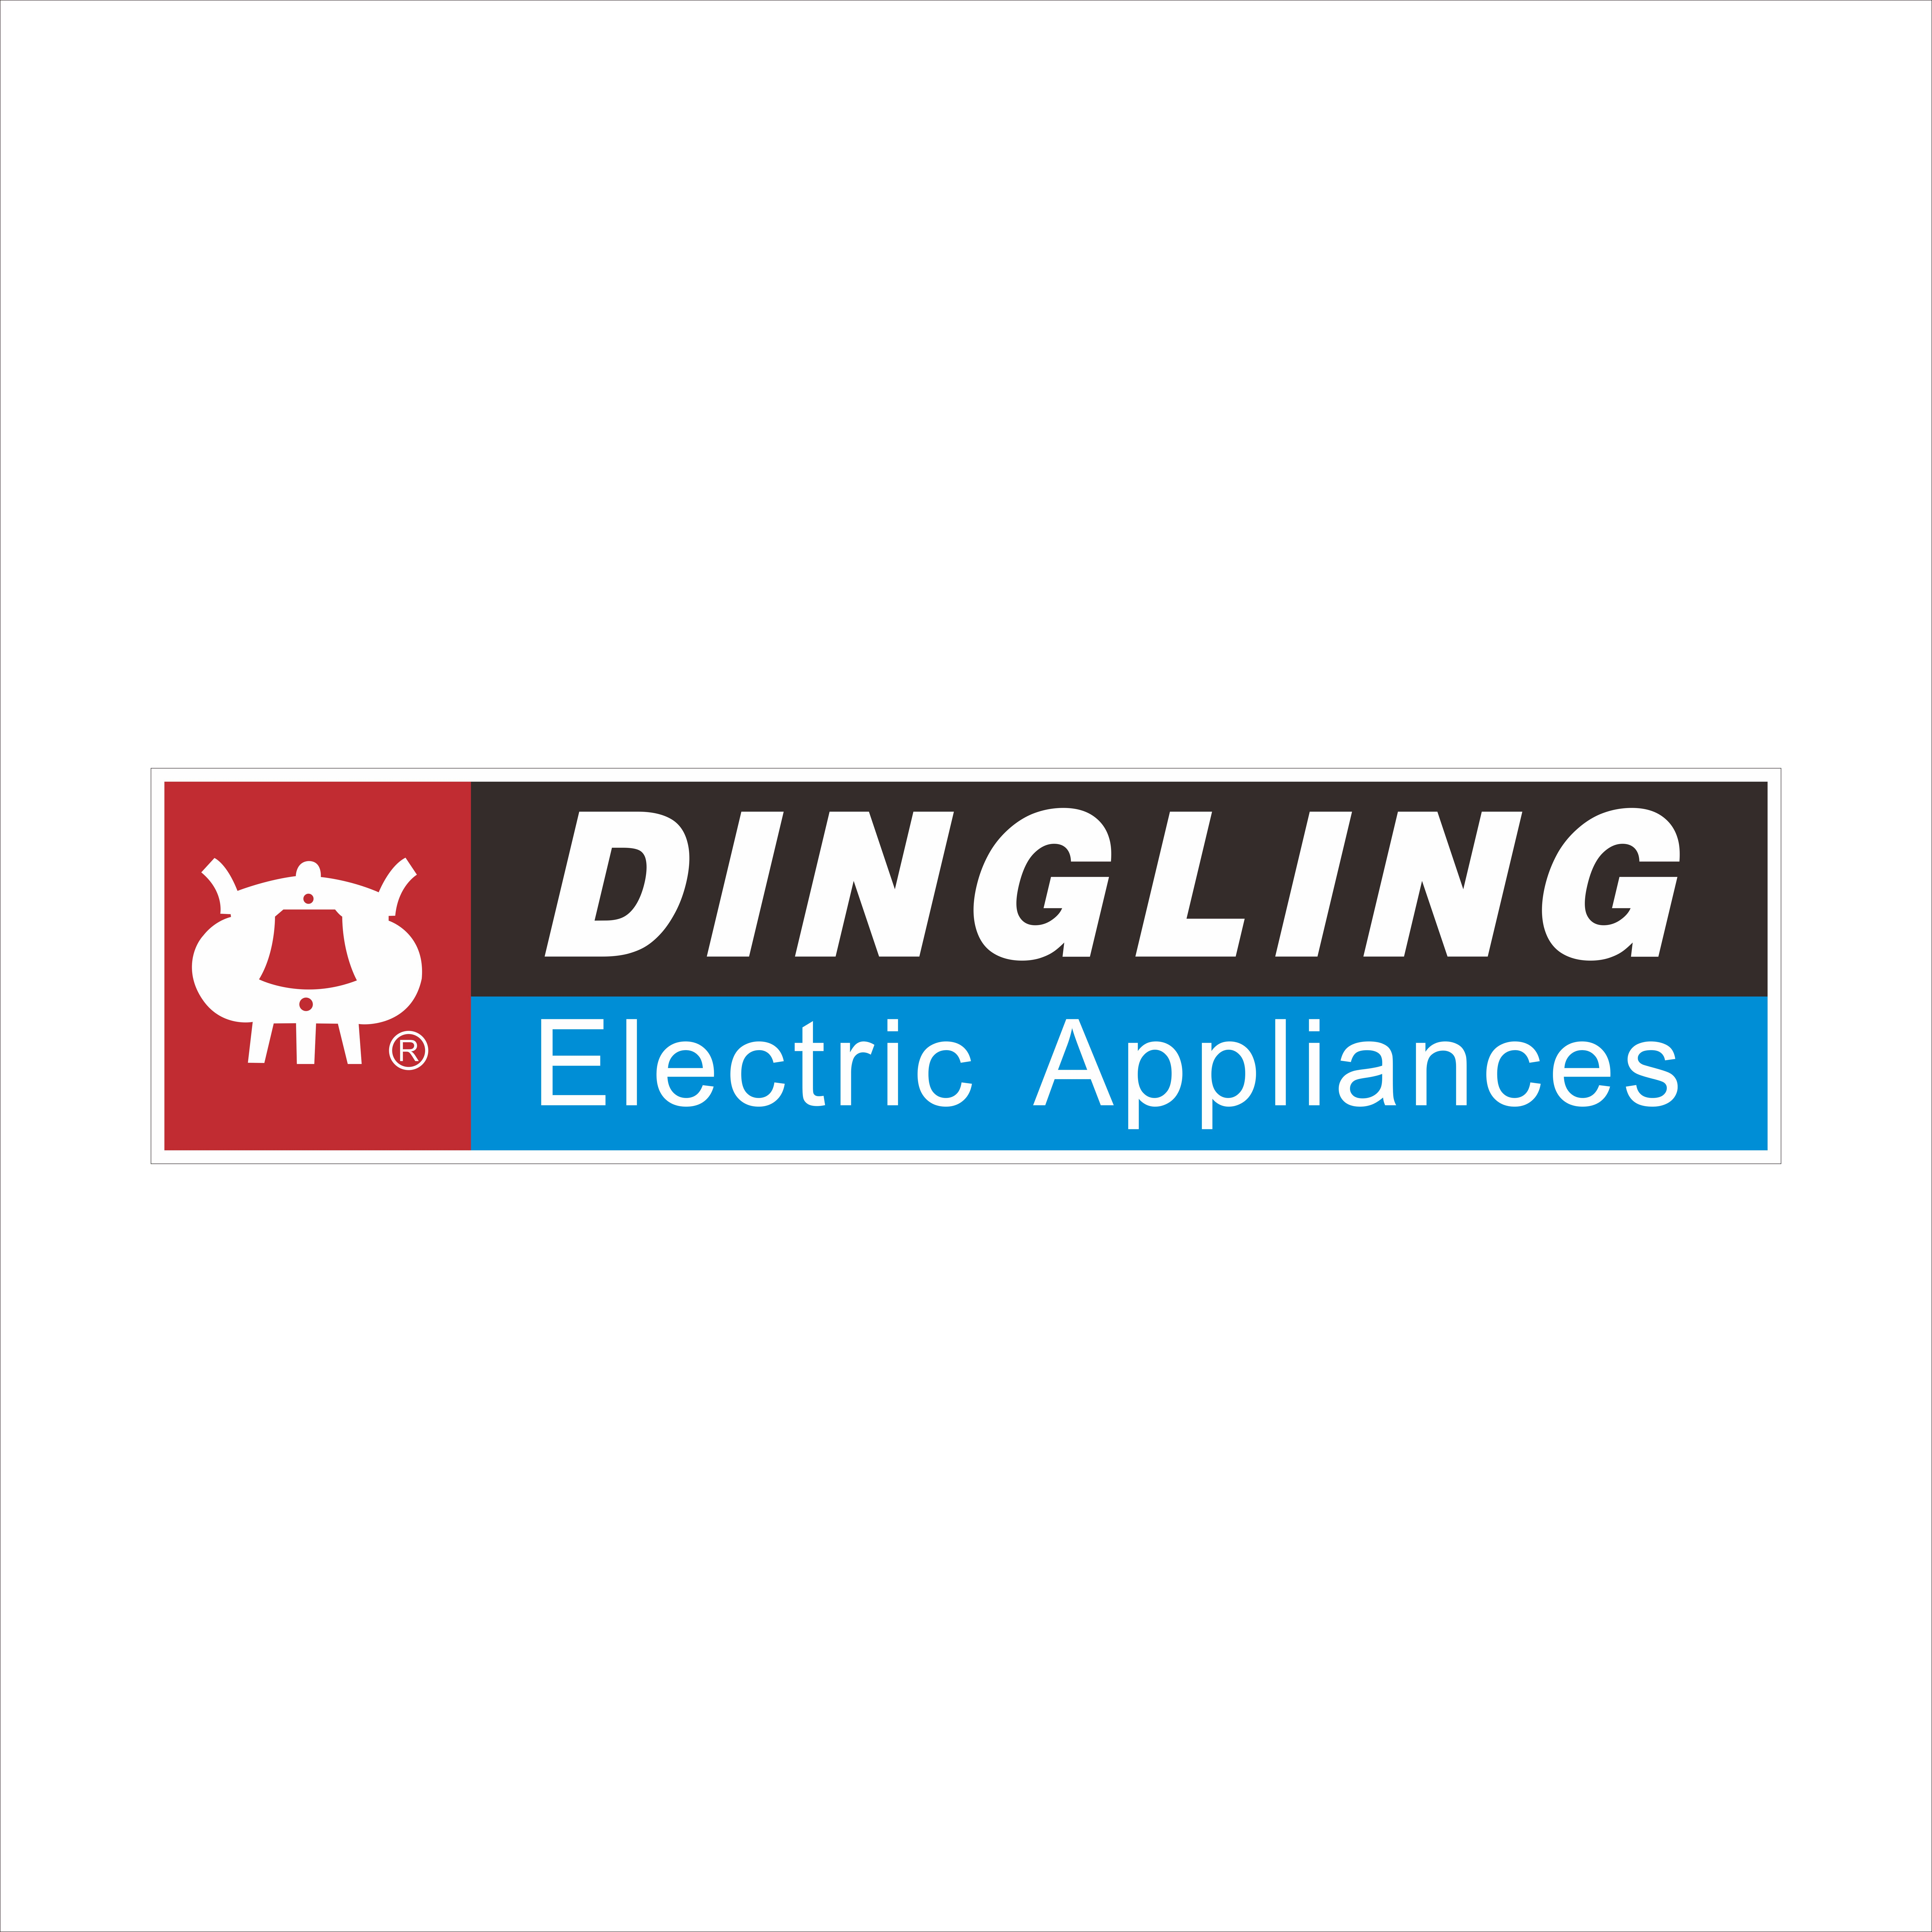 ZHEJIANG DINGLING ELECTRIC APPLIANCES CO.,LTD